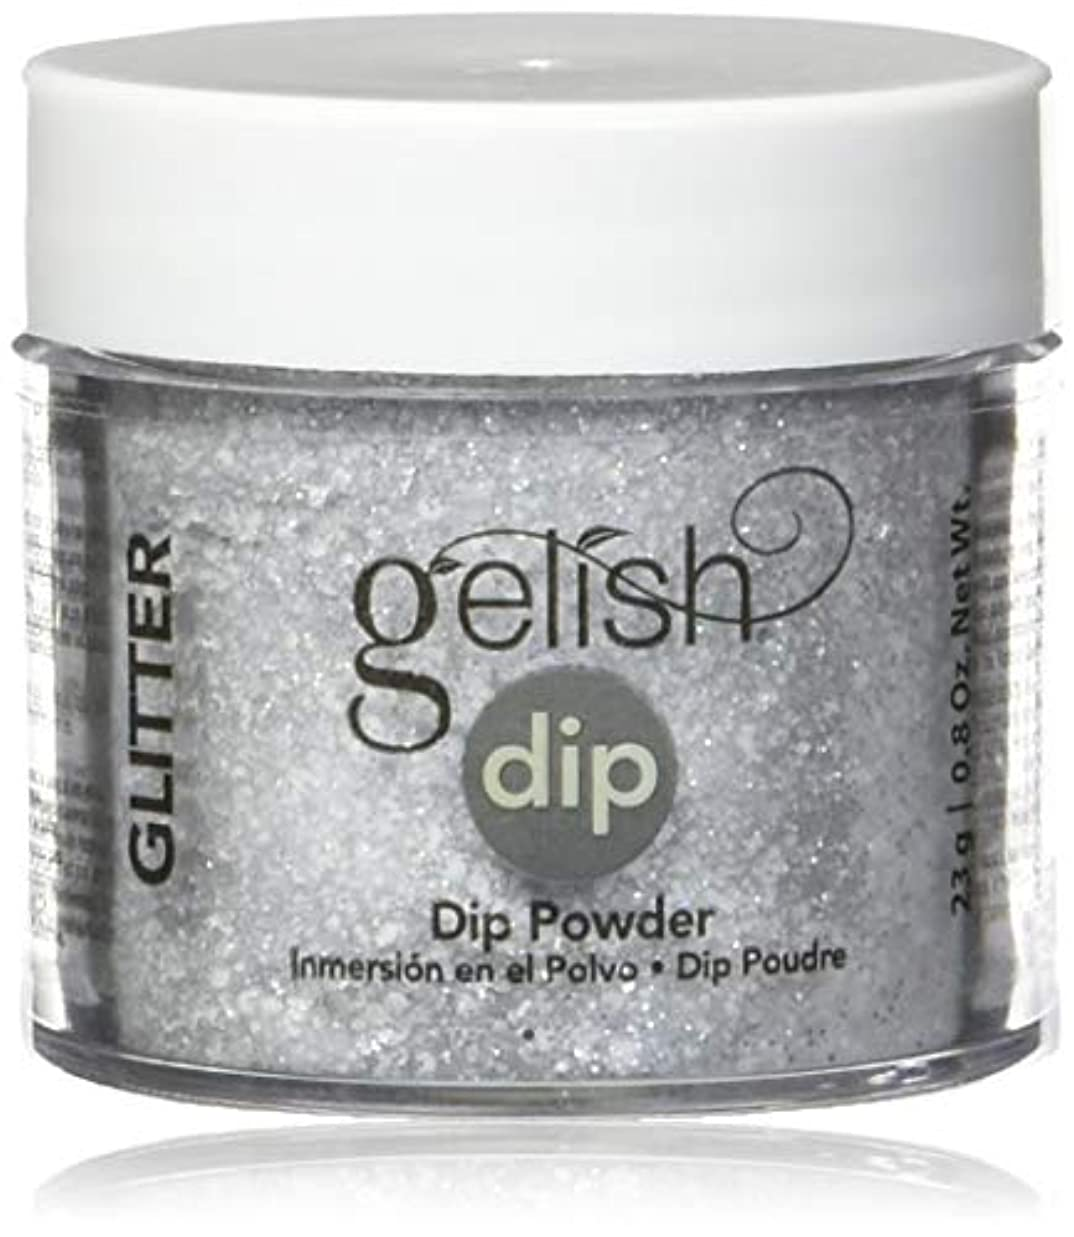 プラットフォーム本物の拡張Harmony Gelish - Acrylic Dip Powder - Am I Making You Gelish? - 23g / 0.8oz